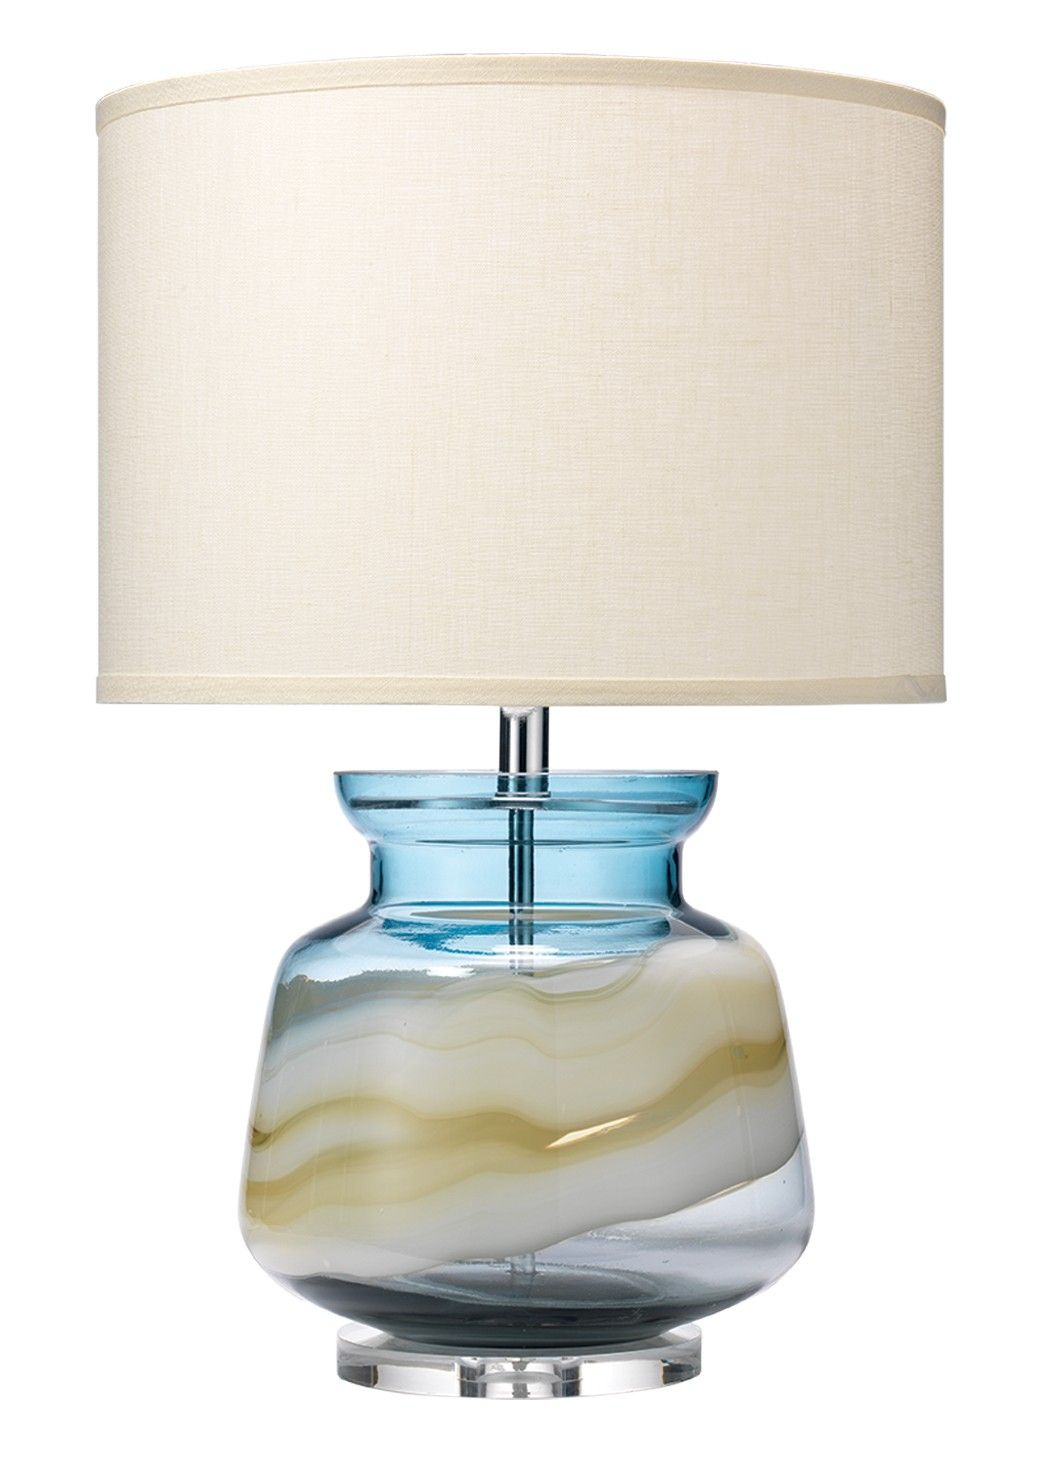 Blue glass table lamps  Ursla Table lamp  Finish as shown blue swirl glass Other avail